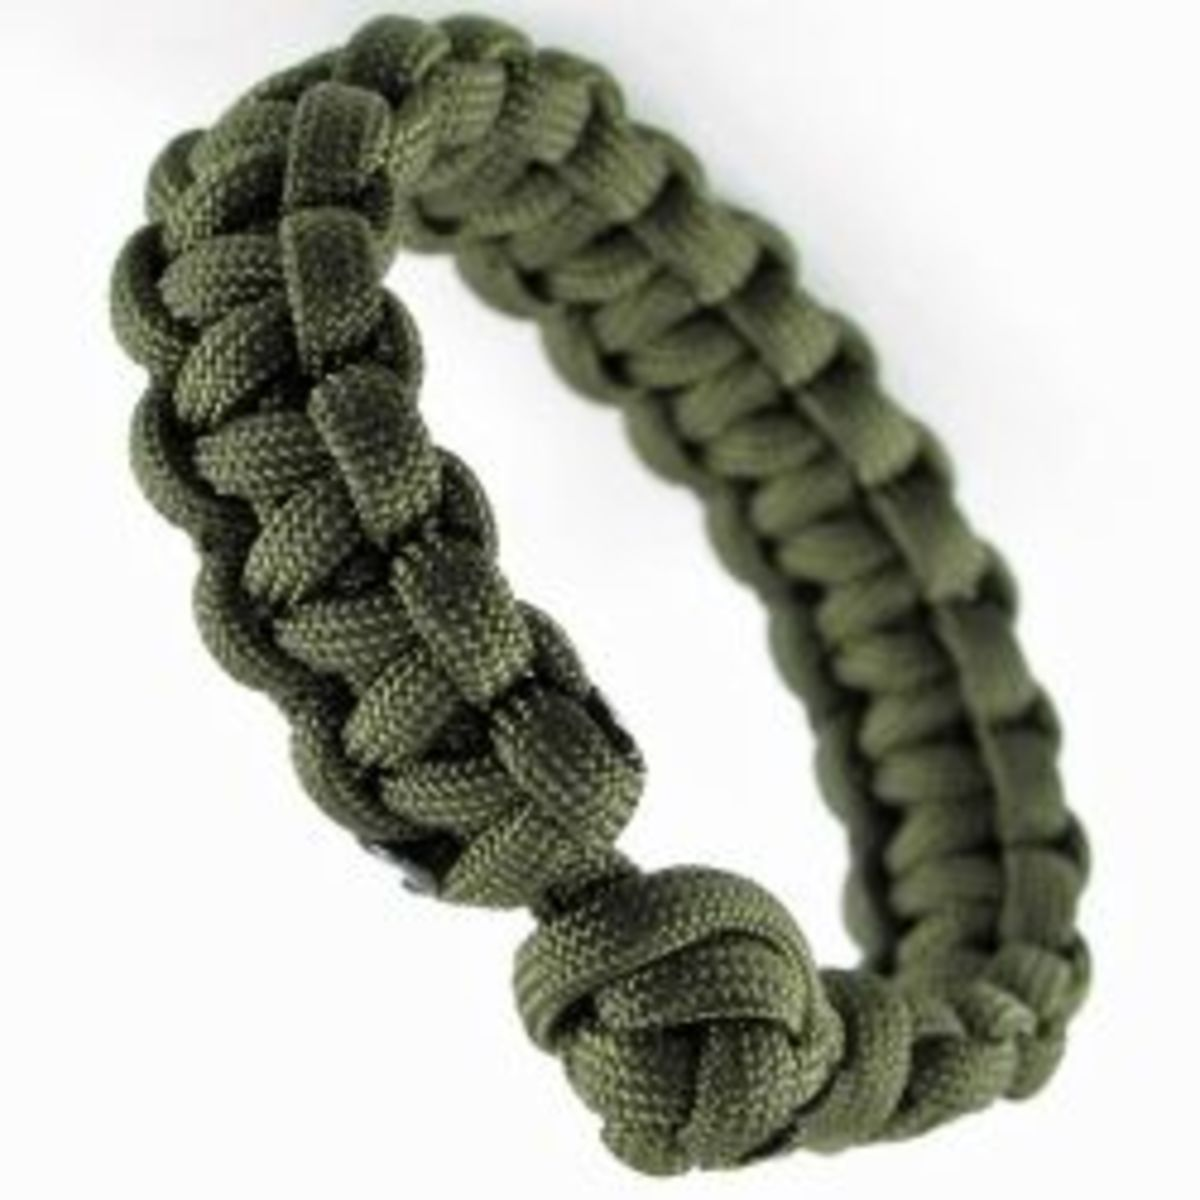 How to make a paracord bracelet in two easy steps hubpages for What can you make out of paracord